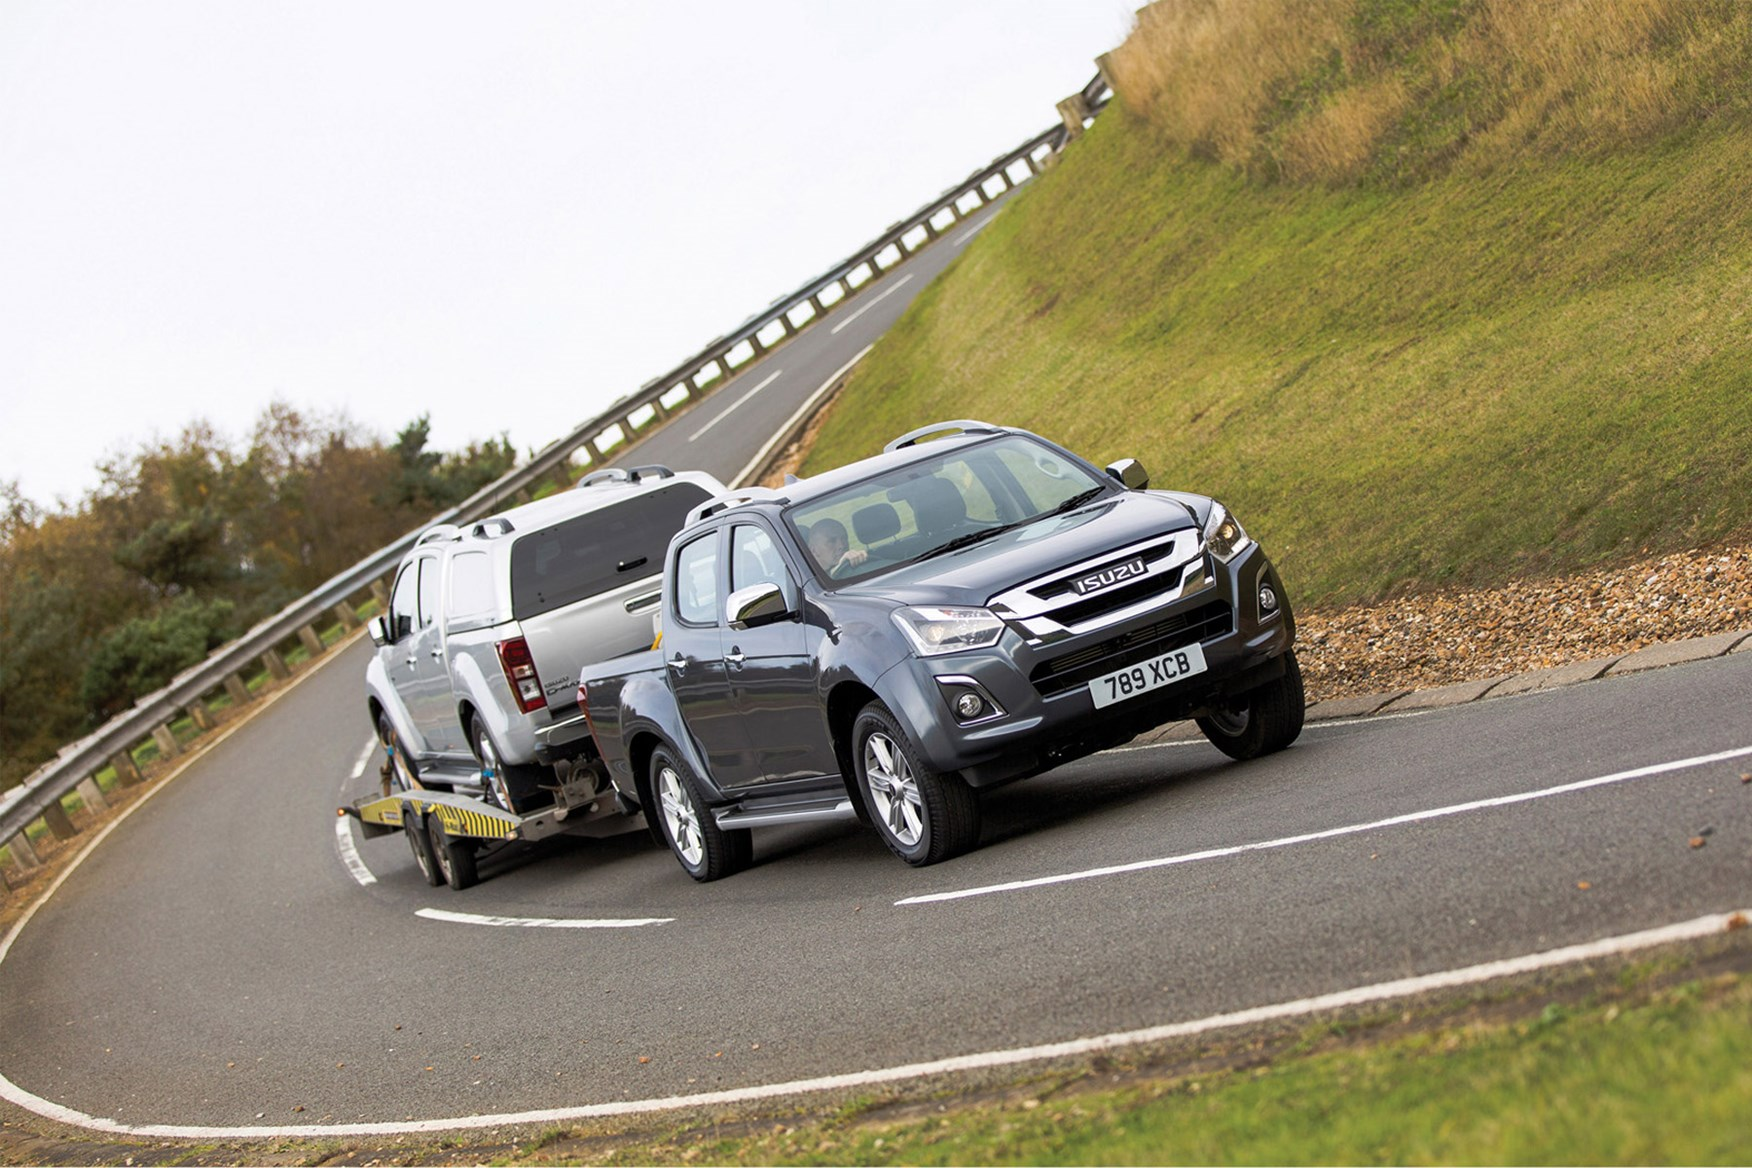 Isuzu D-Max full review on Parkers Vans - towing capability